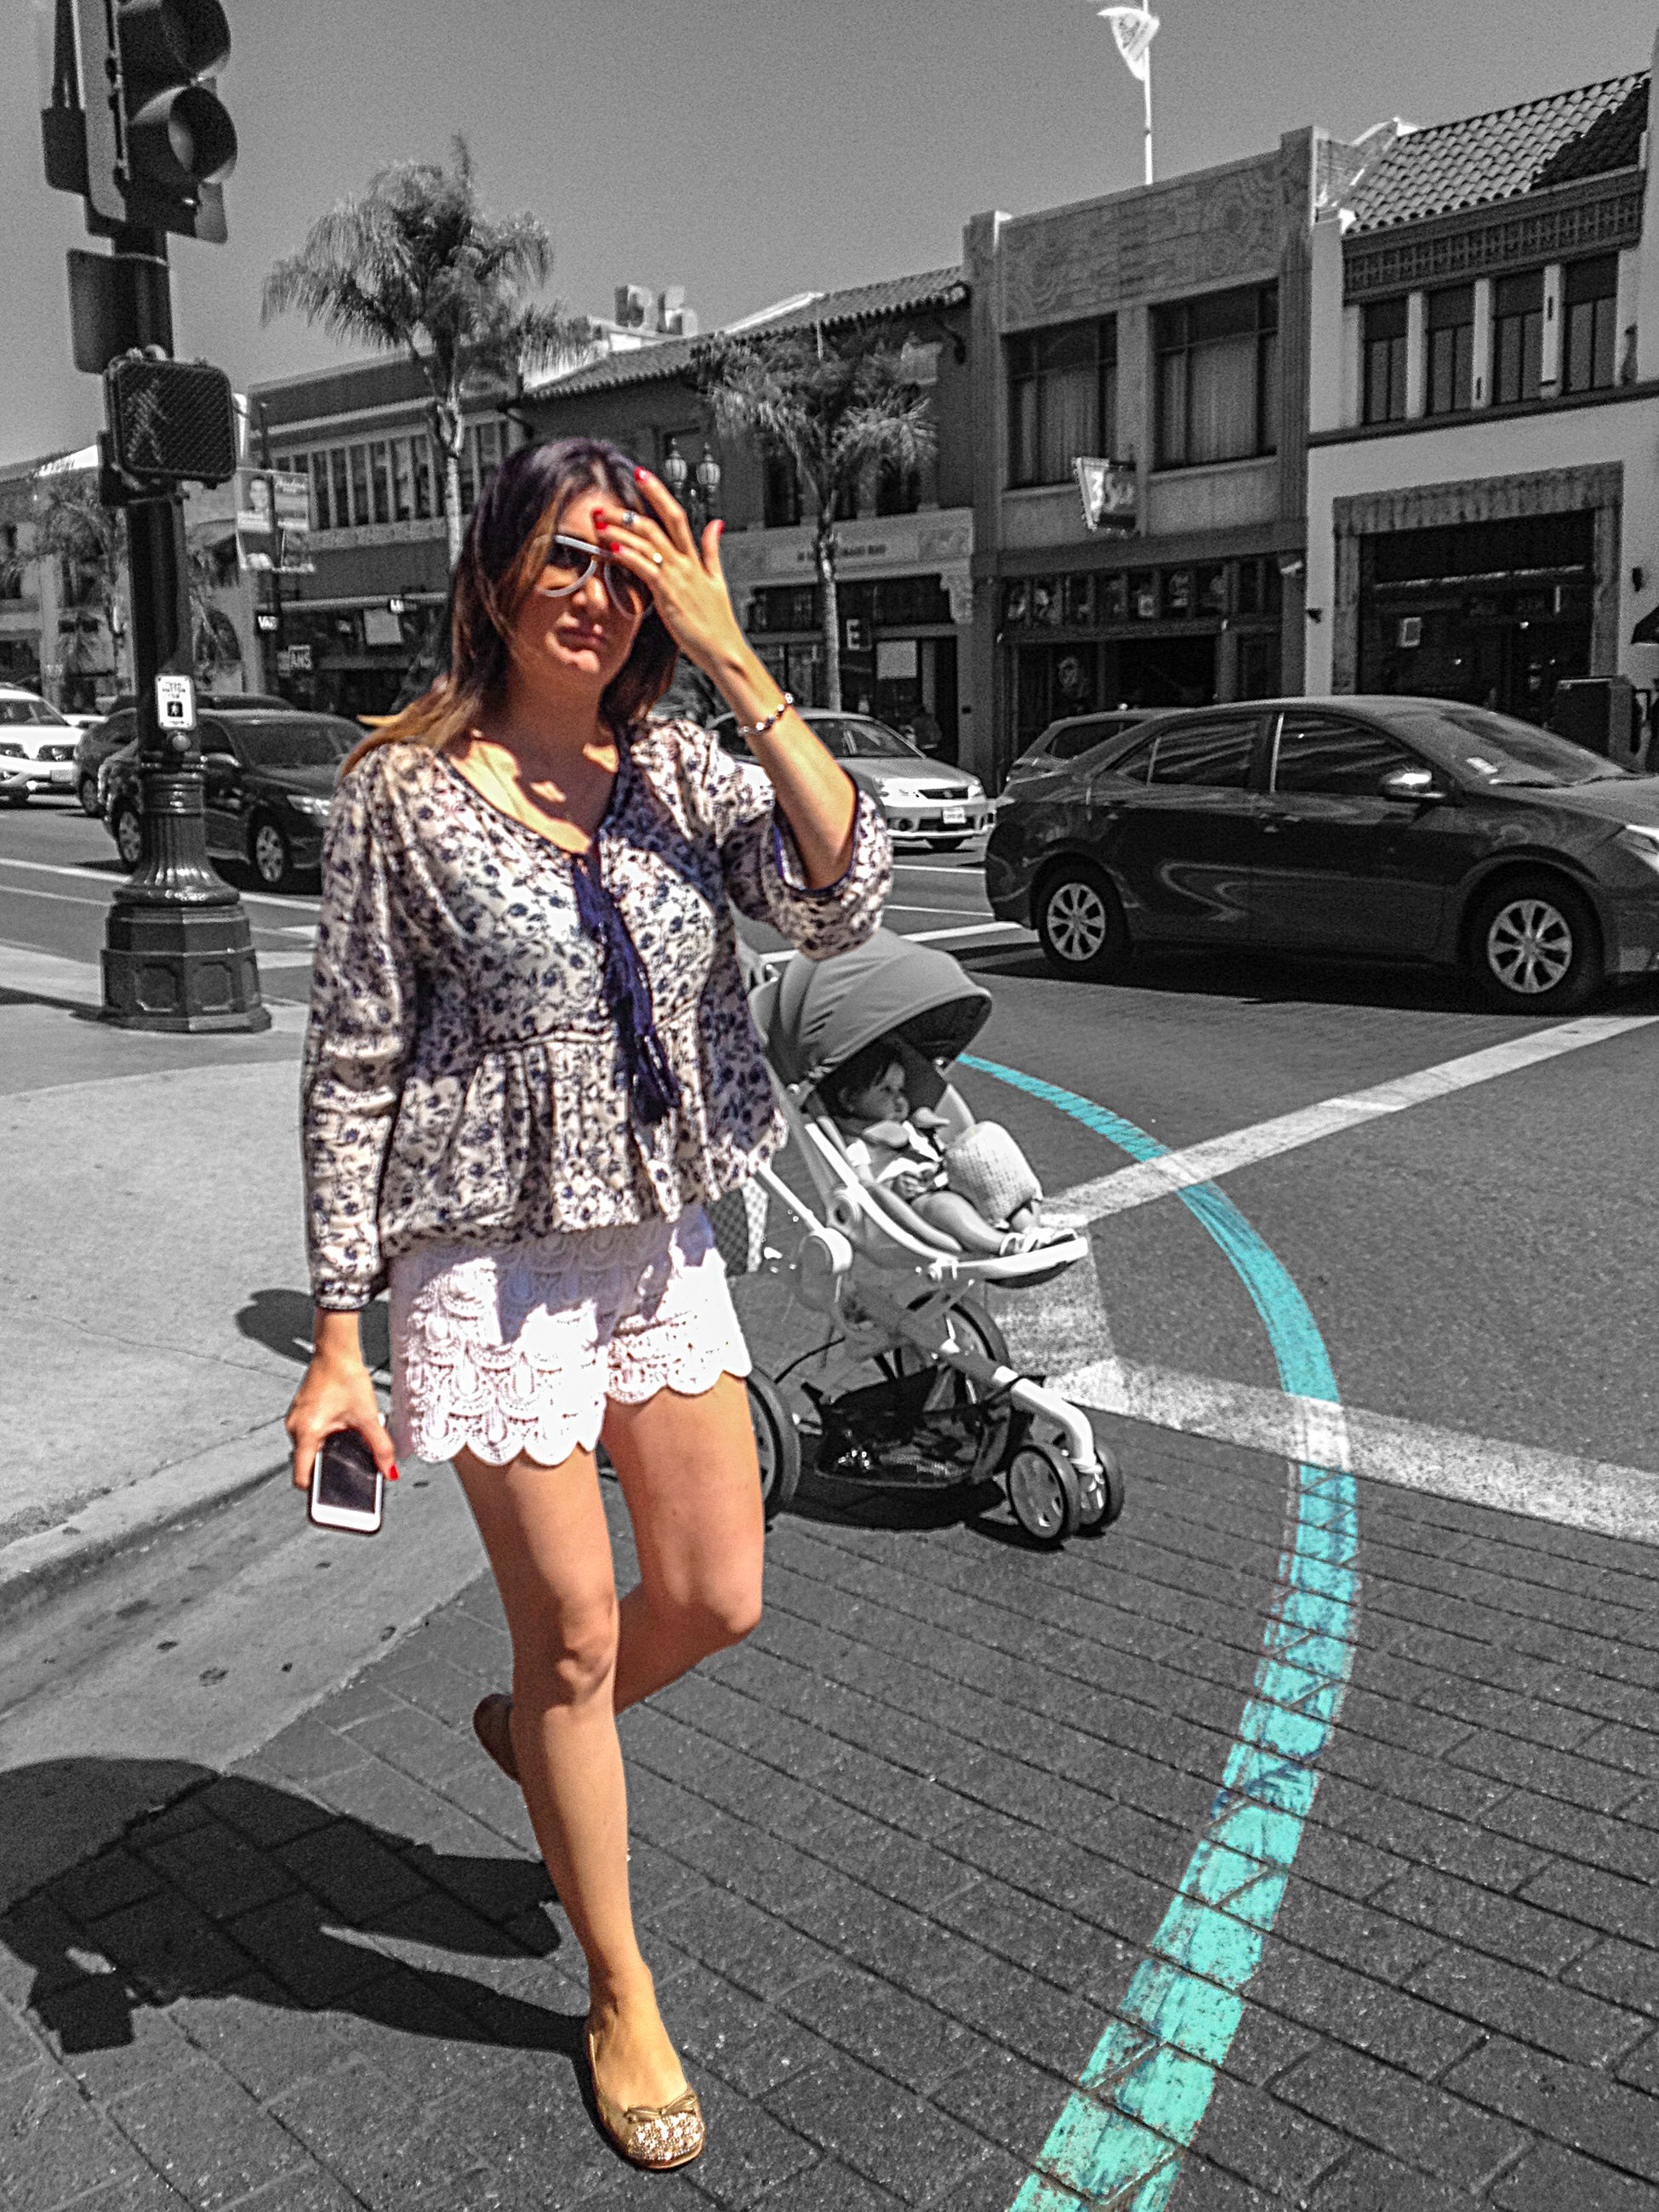 city, street, one woman only, only women, beauty, beautiful people, outdoors, lifestyles, building exterior, built structure, smiling, fashion, beautiful woman, women, one person, adult, city life, happiness, architecture, adults only, human body part, portrait, people, one young woman only, young adult, cheerful, day